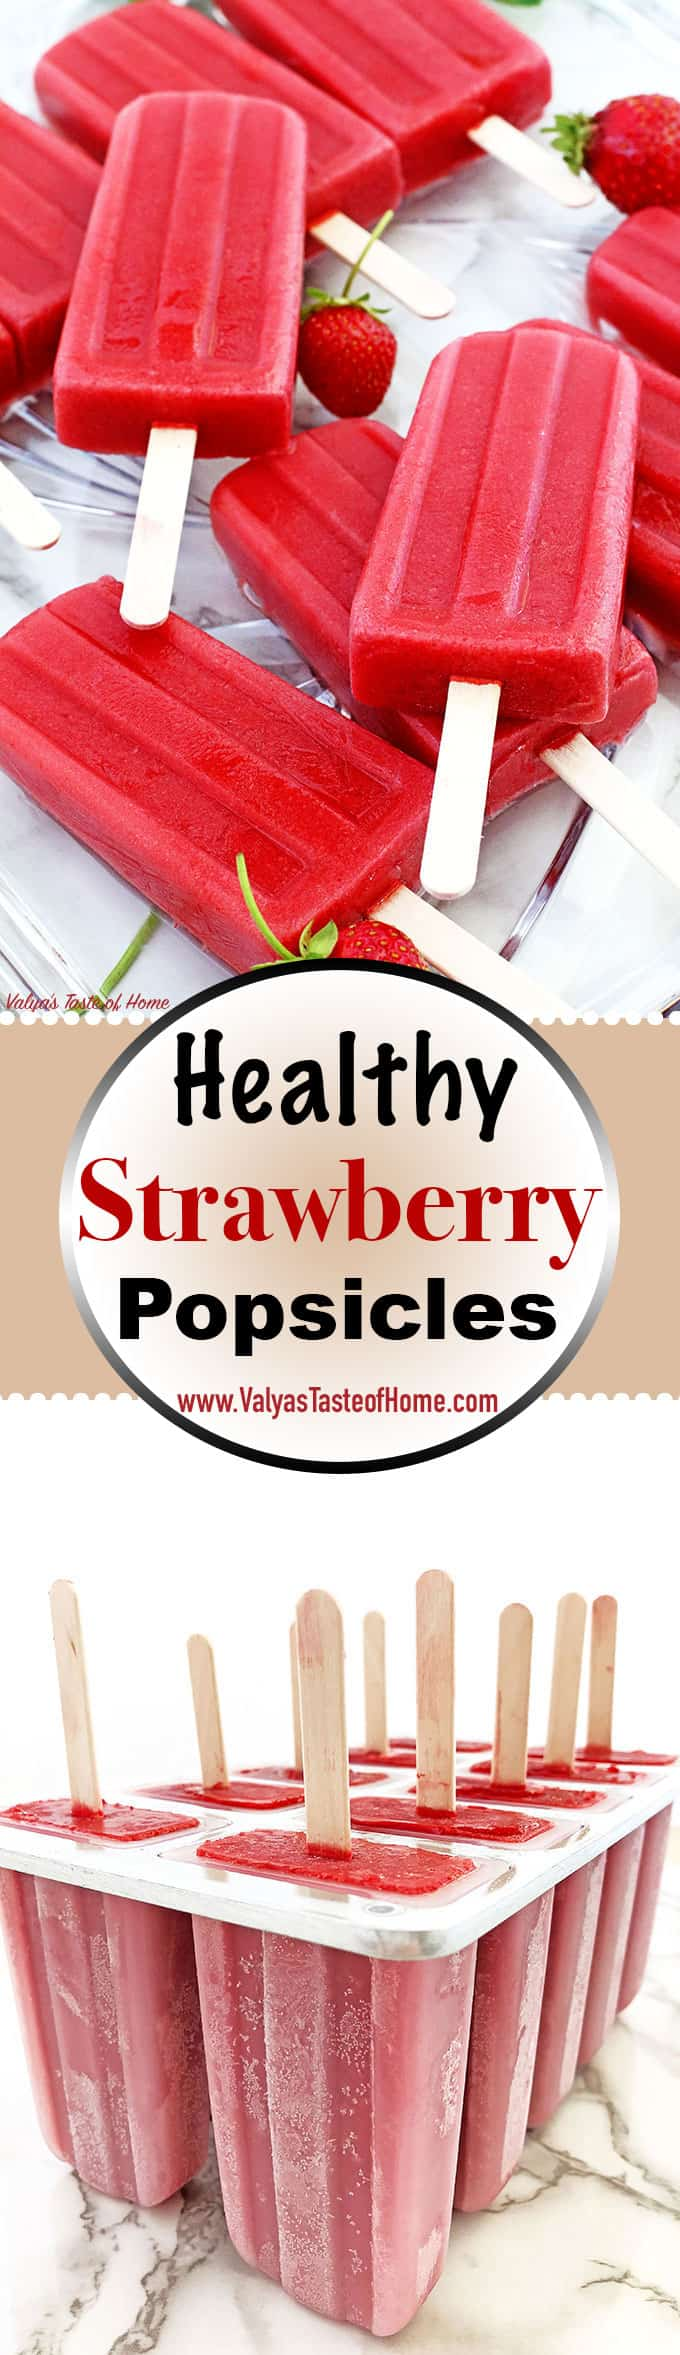 clean eating, dairy free, easy recipe, fresh strawberries, garden strawberries, gluten free, healthy, Healthy Strawberry Popsicles Recipe, homegrown strawberries, homemade popsicles, kid friendly, maple from Canada, organic maple syrup, popsicles, vanilla cashew milk, vegan